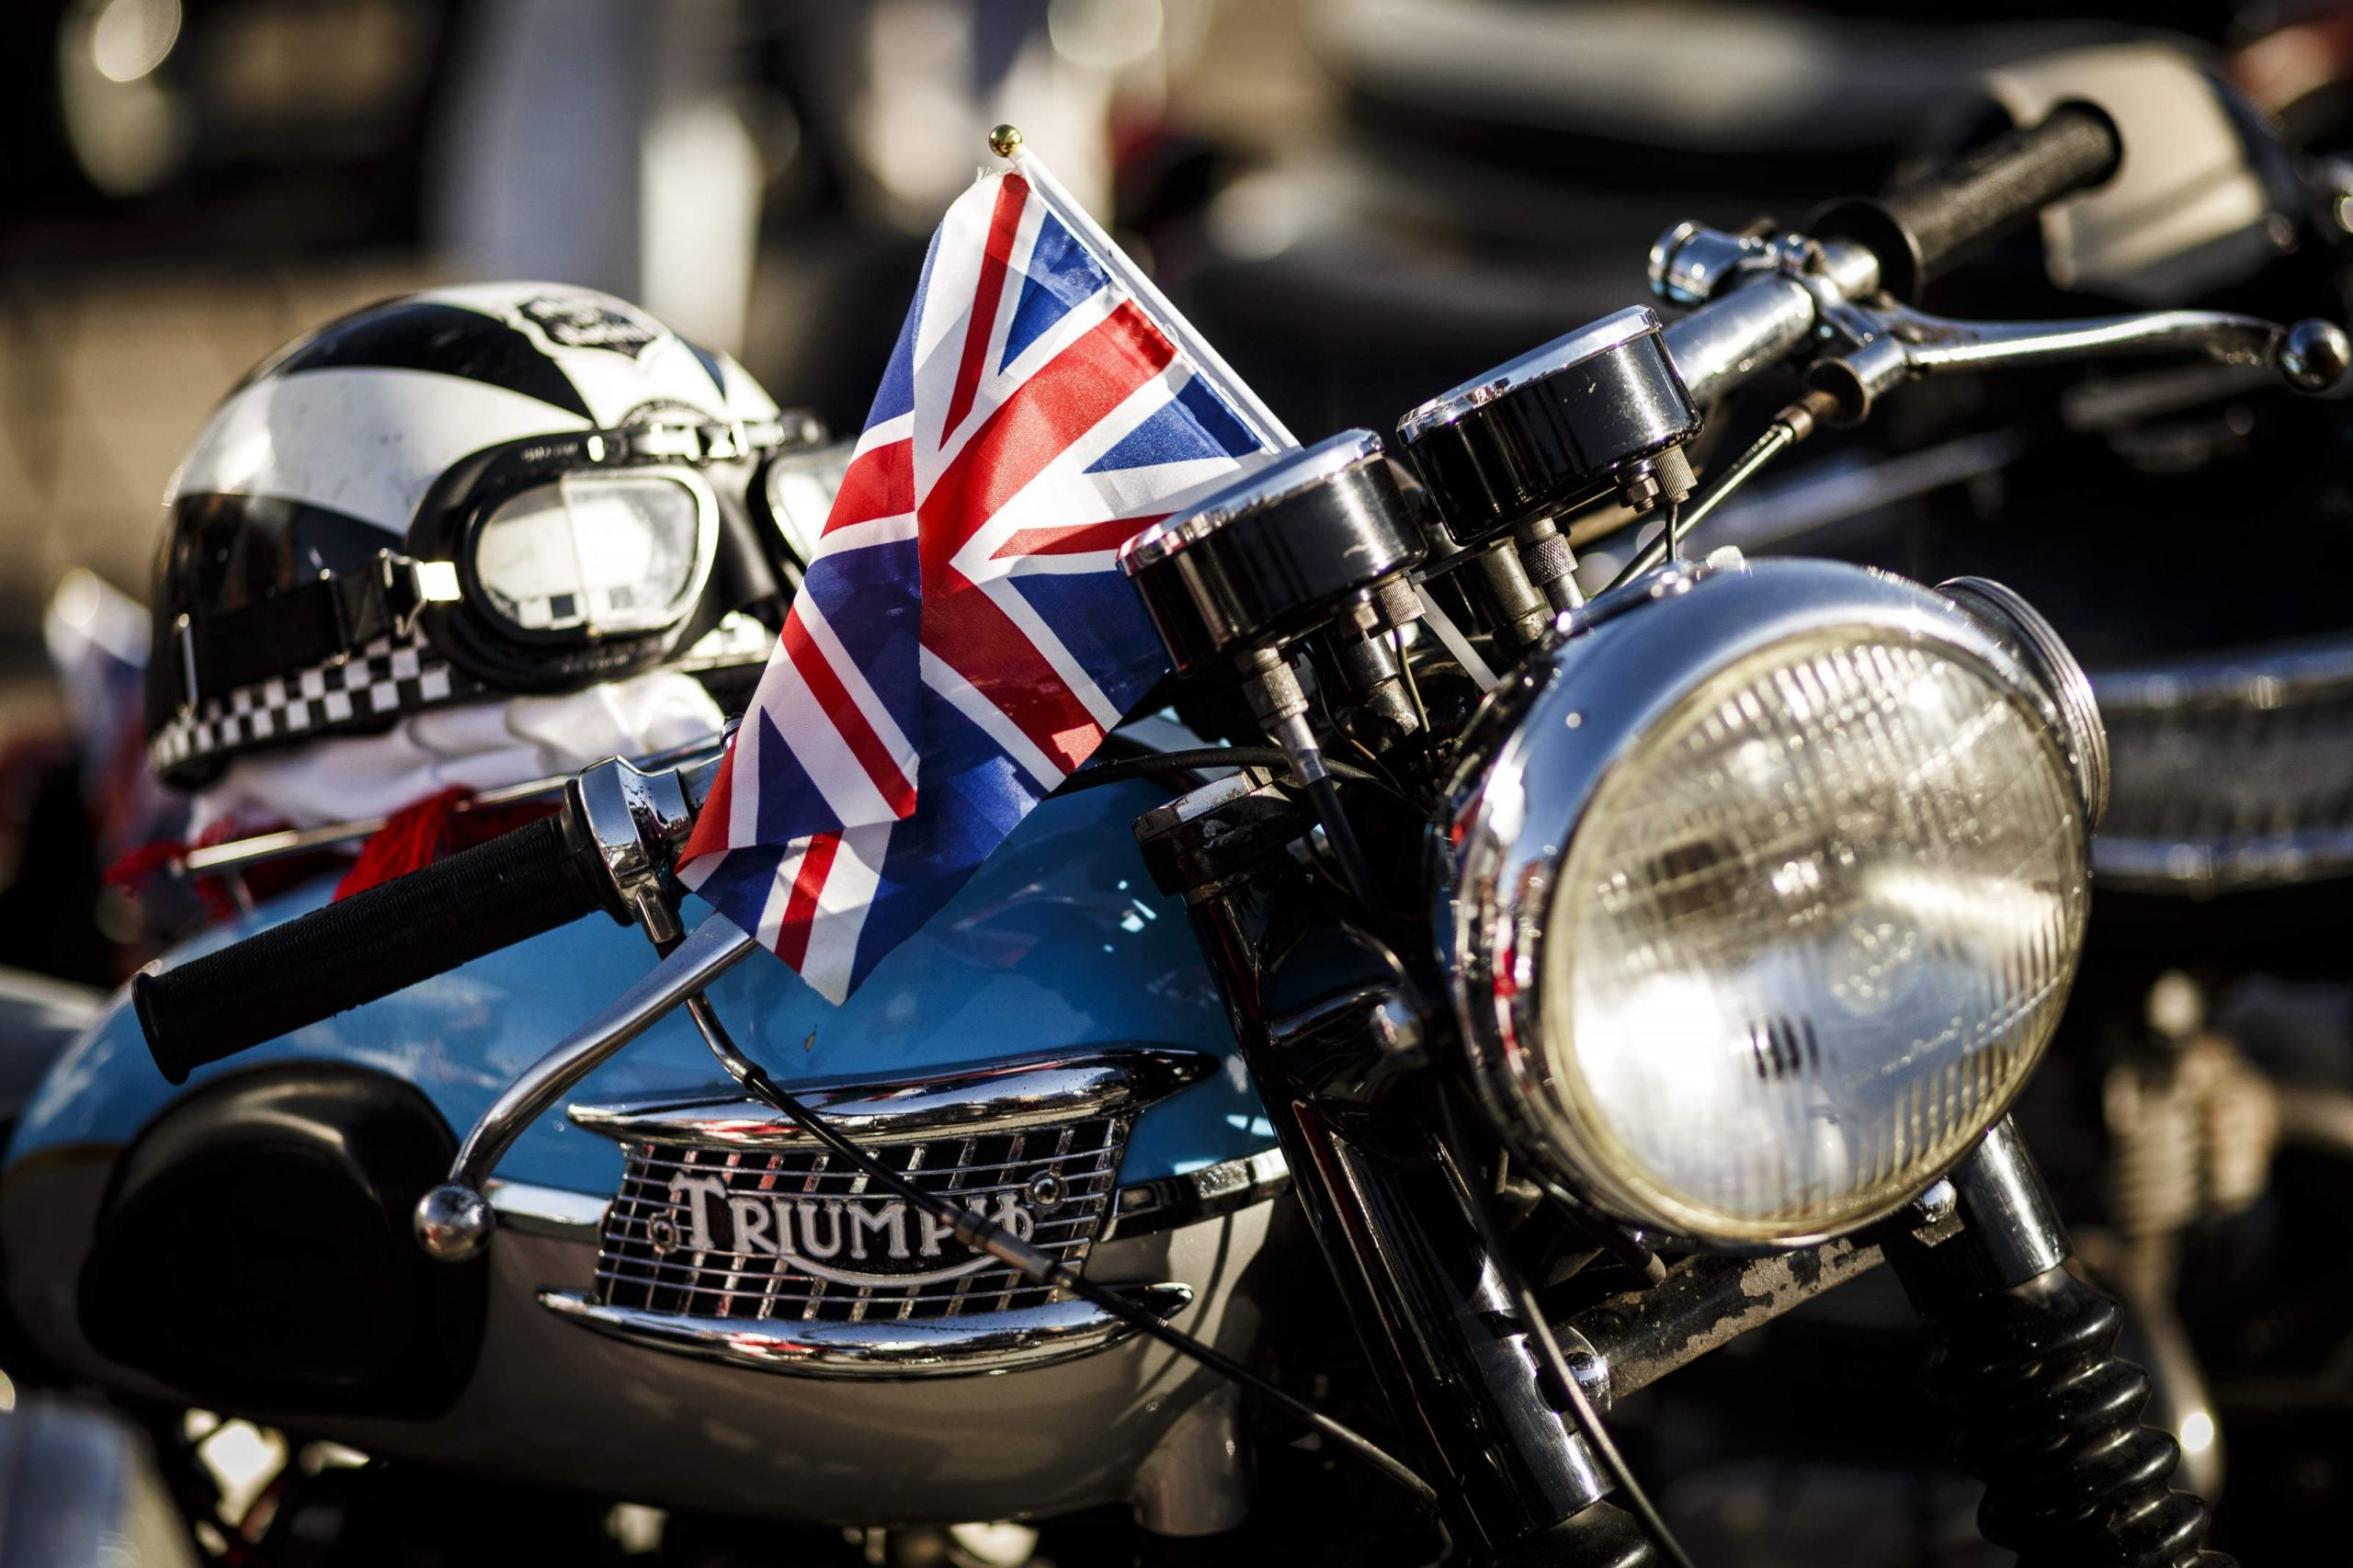 Commons Confidential: Jeremy Corbyn's motorcycle diaries